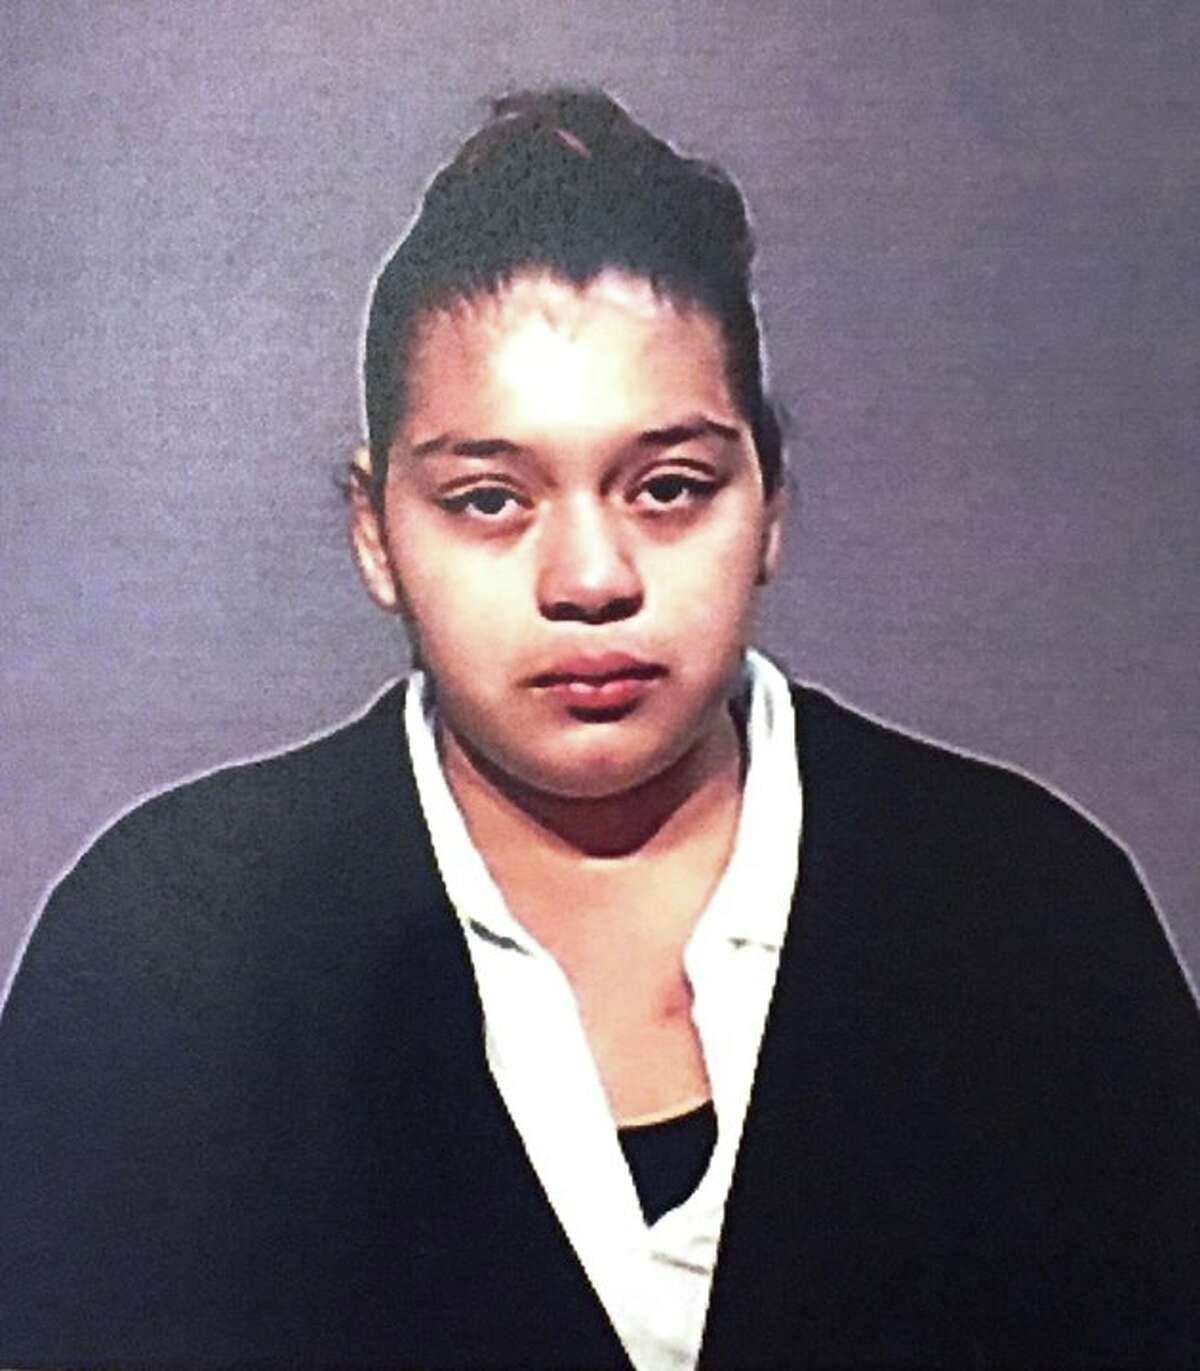 Fabiola Lopez, 21, faces a capital murder charge for allegedly killing her 10-month-old son.